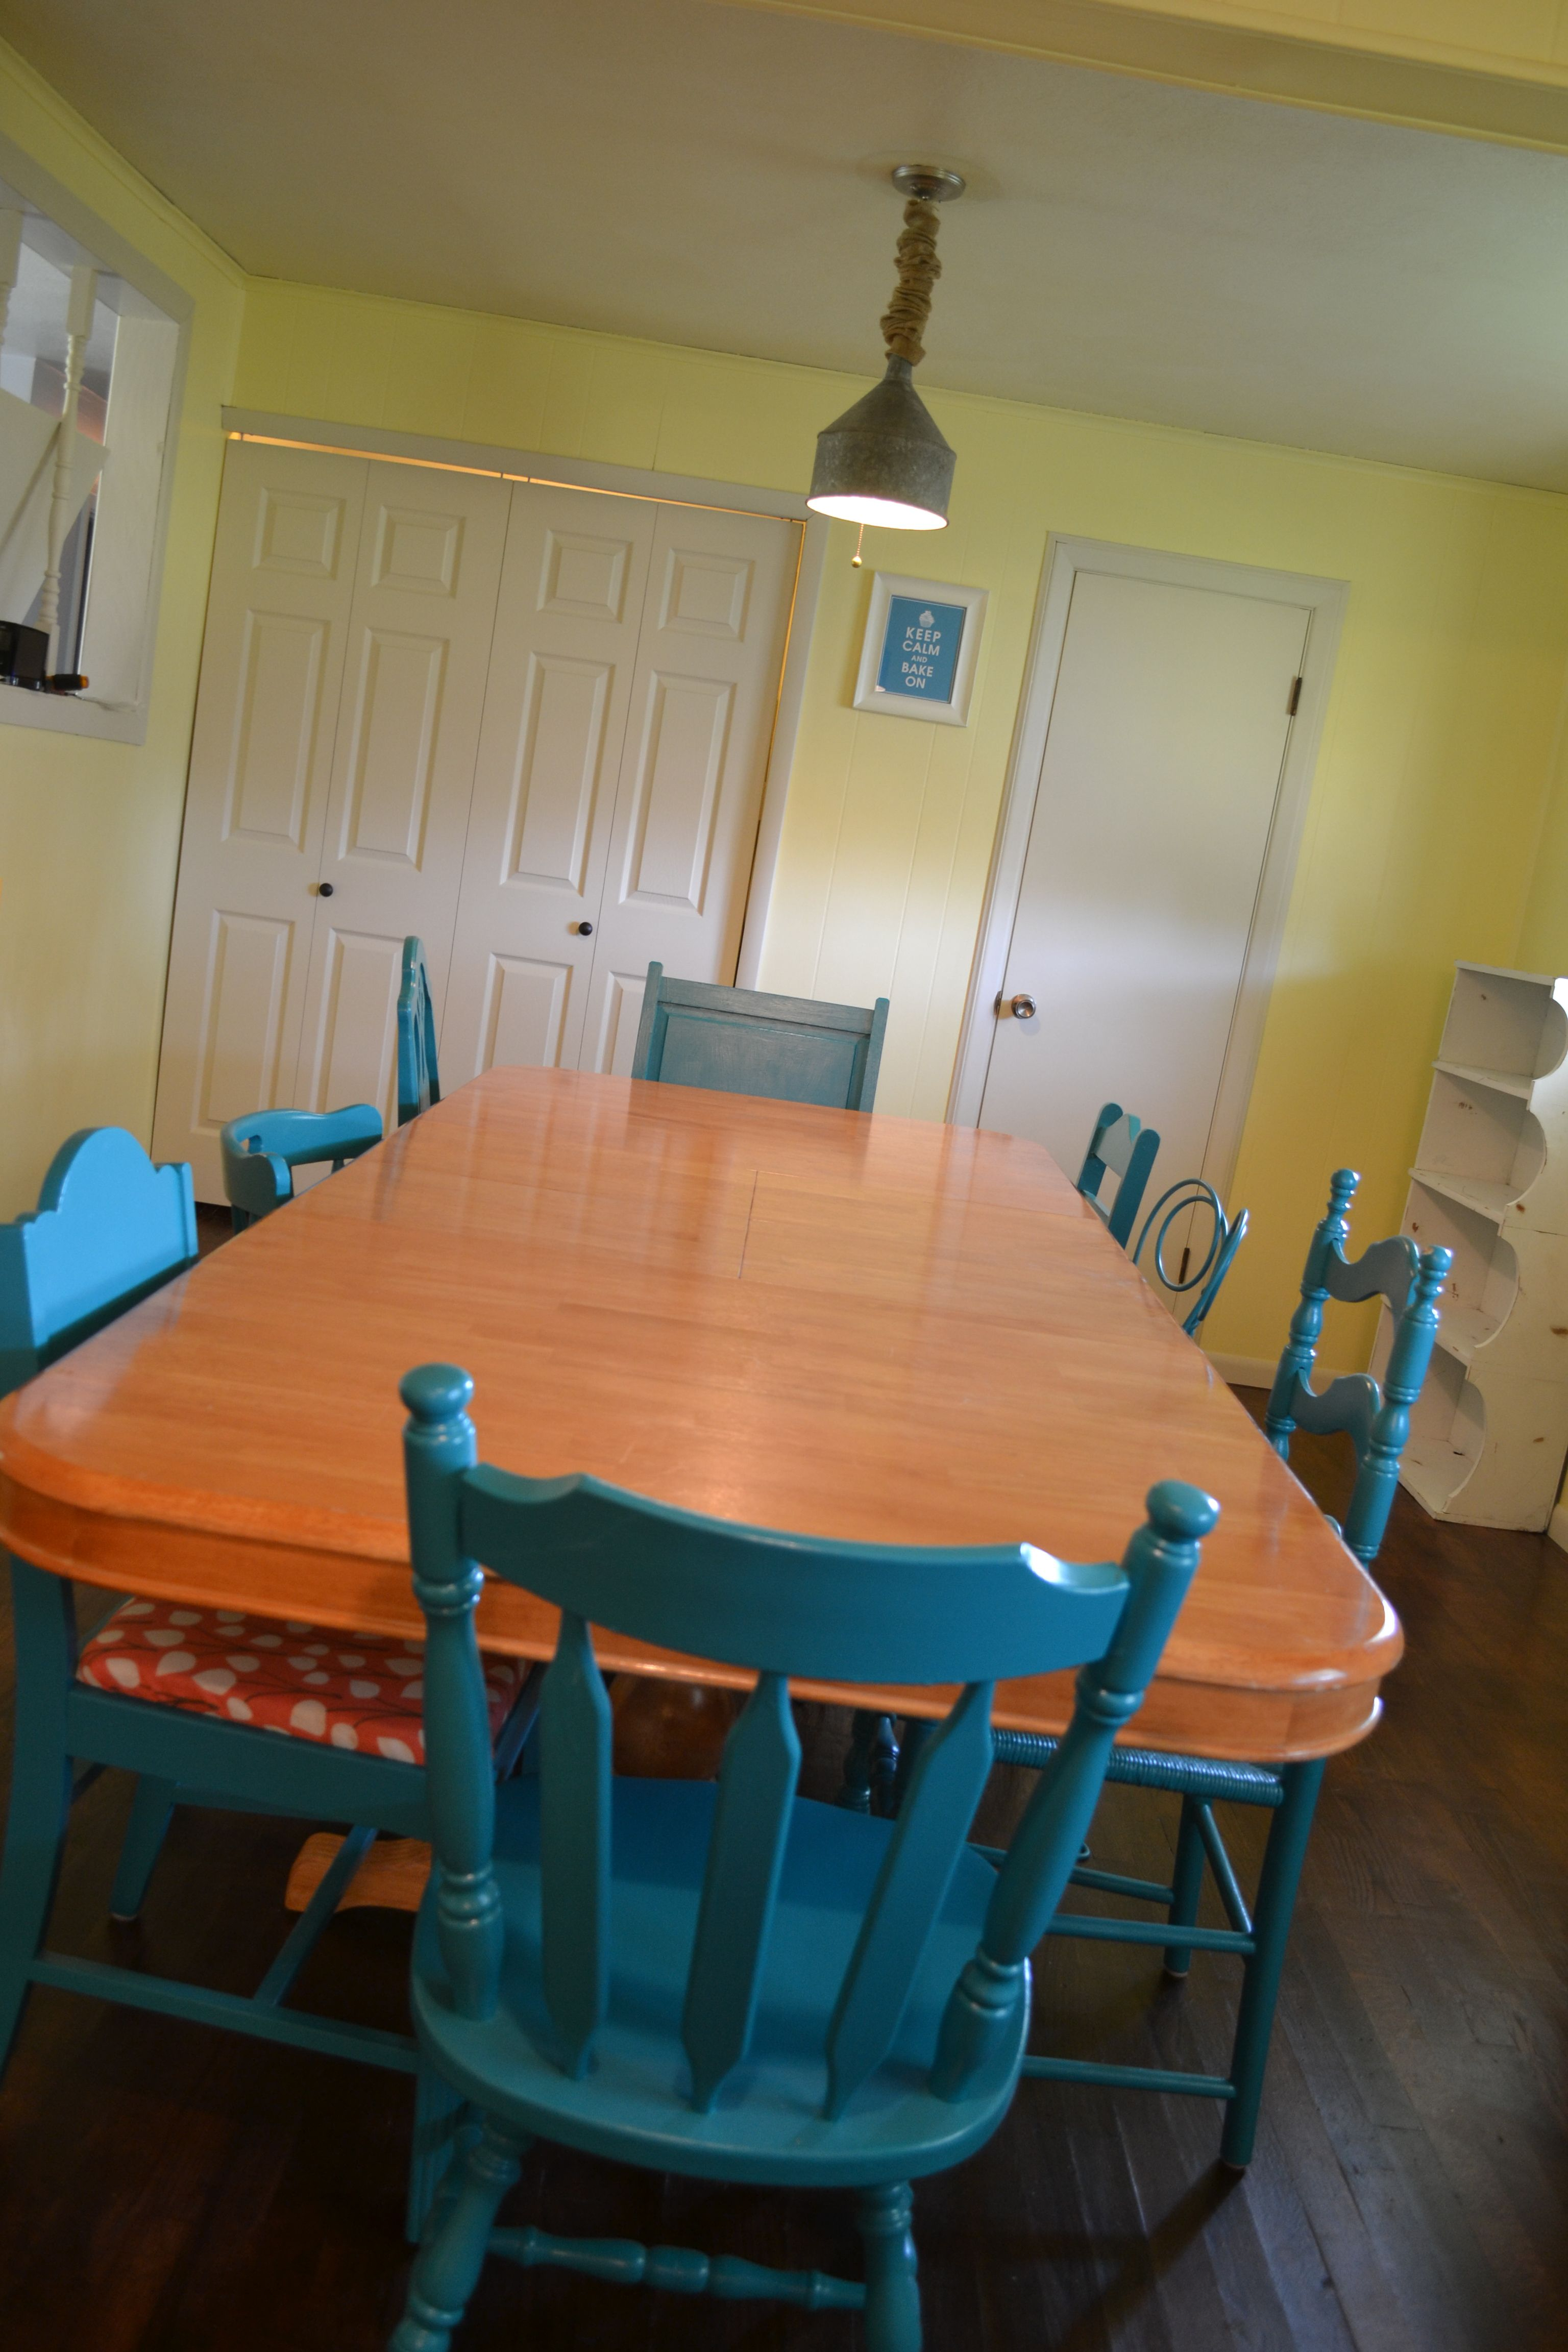 mismatched kitchen chairs need 2 more for my table...paint a ... on painting ideas for headboards, painting ideas for mirrors, painting ideas for armoires, painting ideas for bedroom furniture, painting ideas for dressers, painting ideas for benches, painting ideas for coffee tables, painting ideas for shelves, painting ideas for chest of drawers, painting ideas for wood, painting ideas for desks, painting ideas for patio furniture, painting ideas for china cabinets, painting ideas for table tops, painting ideas for fireplaces, painting ideas for bookshelves, painting ideas for cribs,